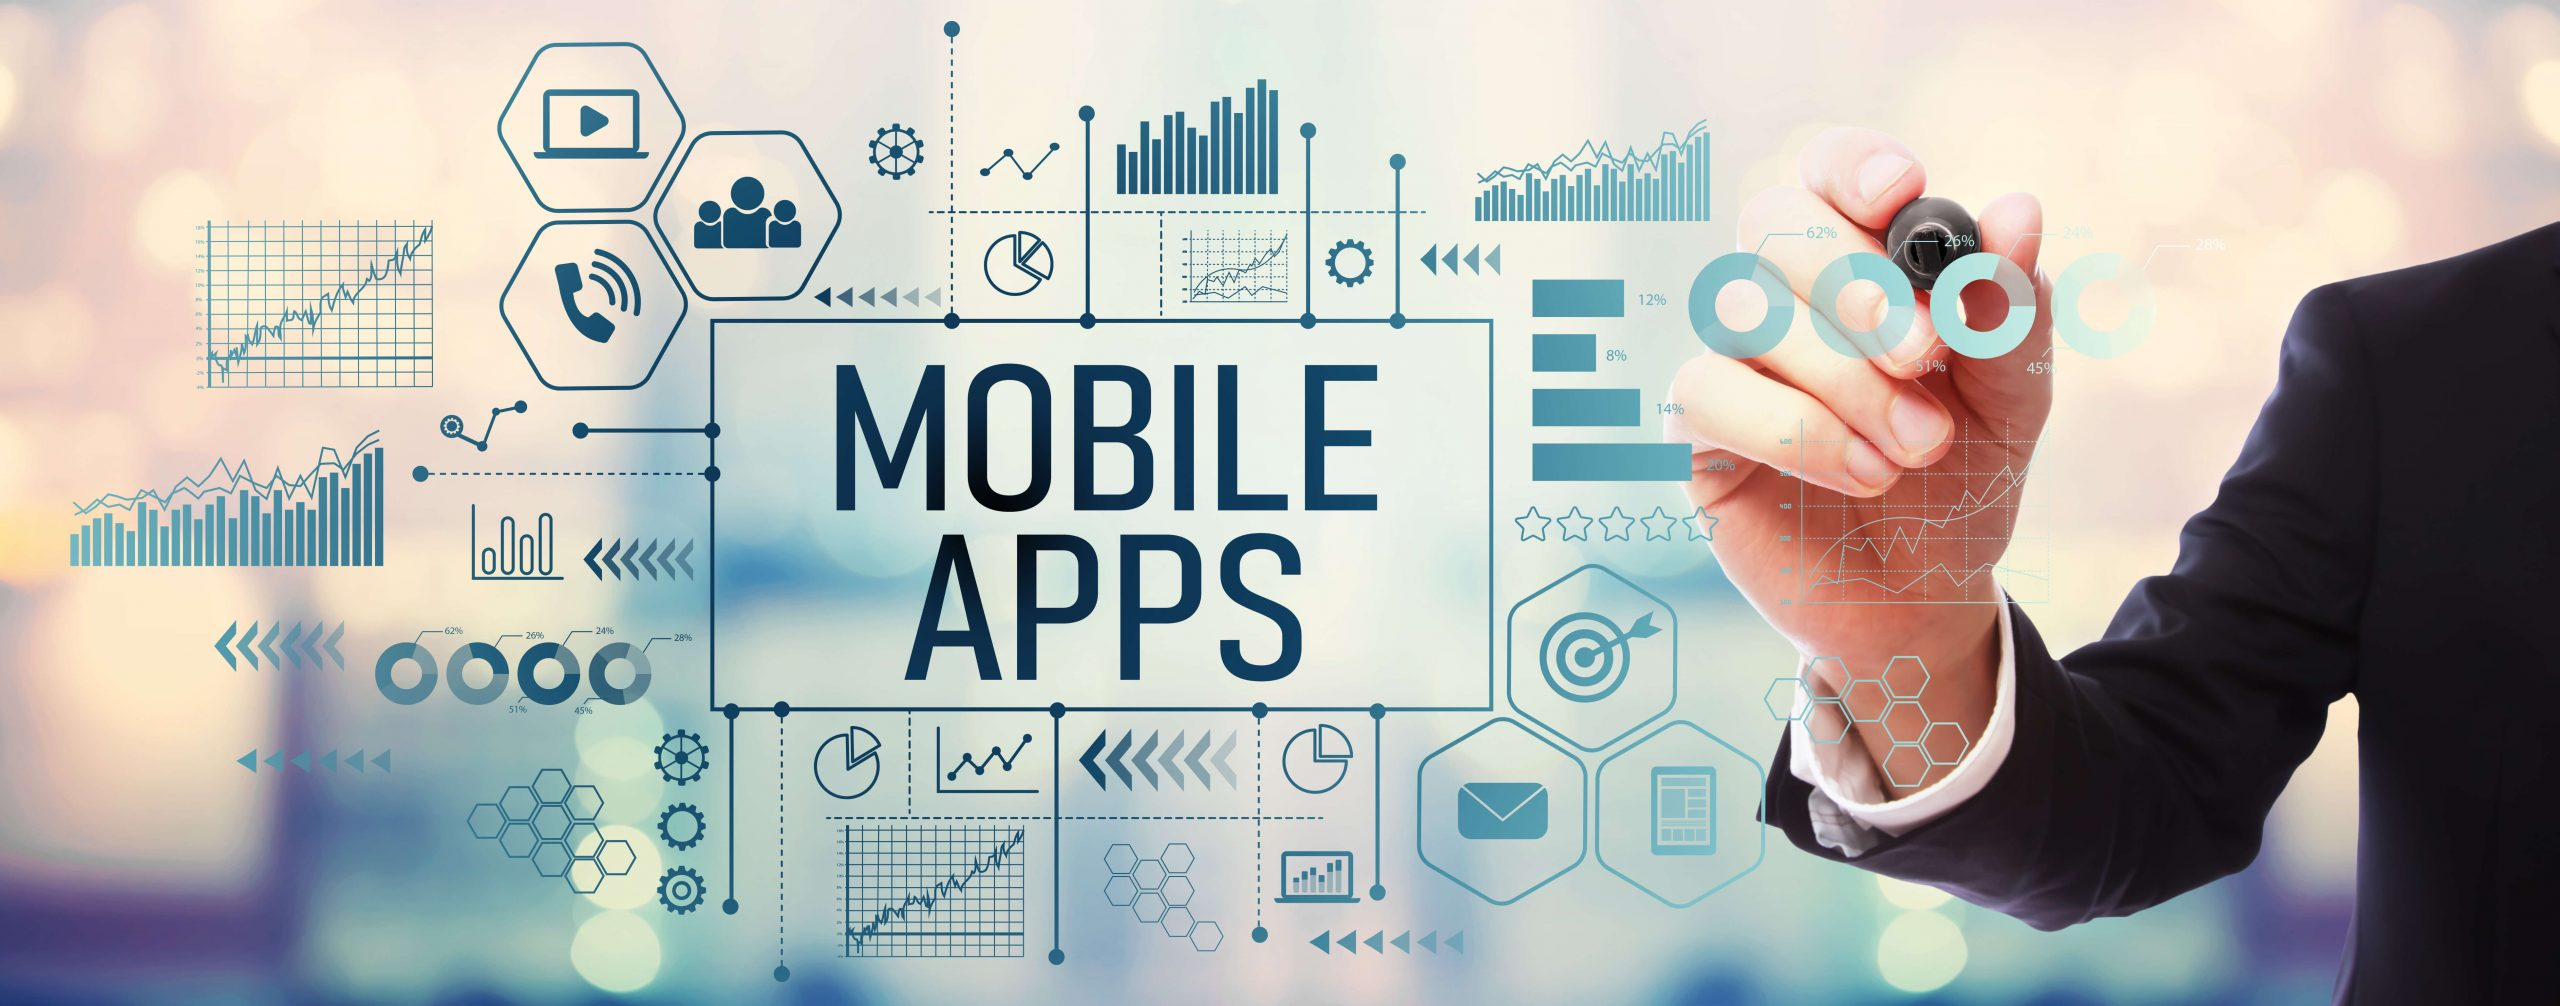 How to Choose a Mobile App Development Company - How-to-Choose-a-Mobile-App-Development-Company-1-scaled-2